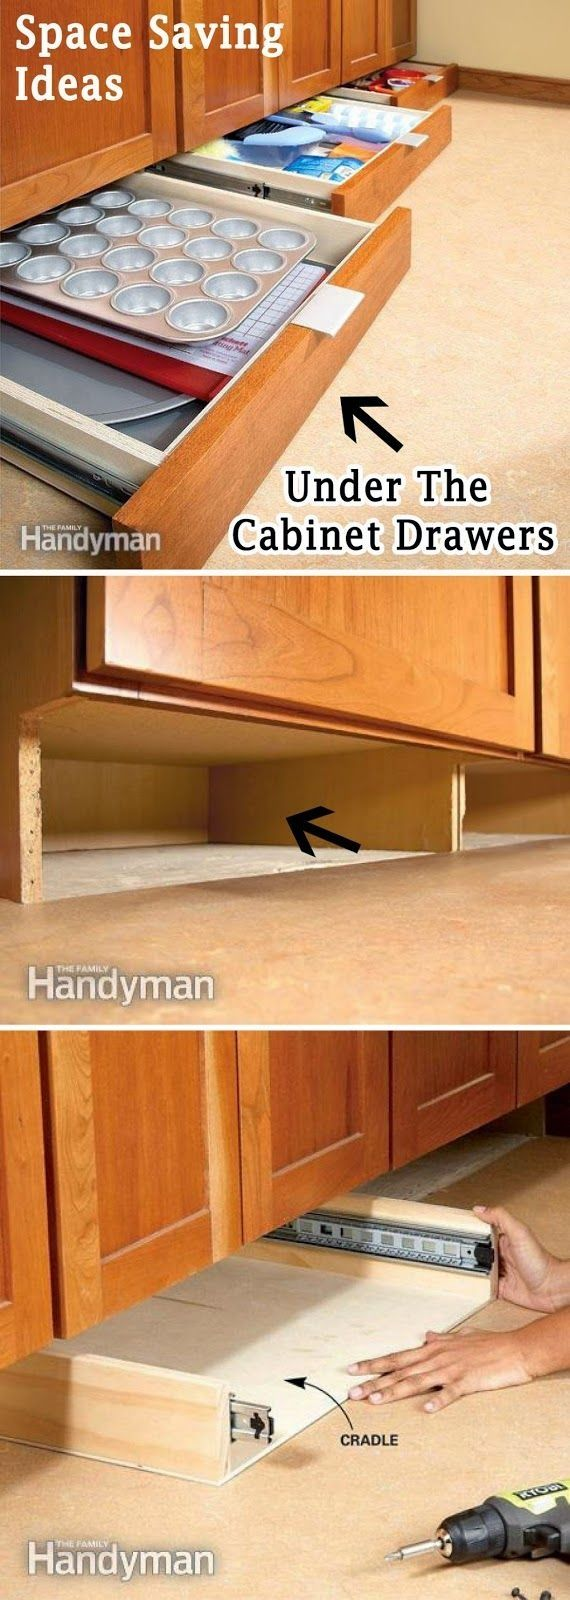 1000 ideas about cabinet space on pinterest cabinets large homes and concept kitchens - Kitchen storage solutions for small spaces concept ...